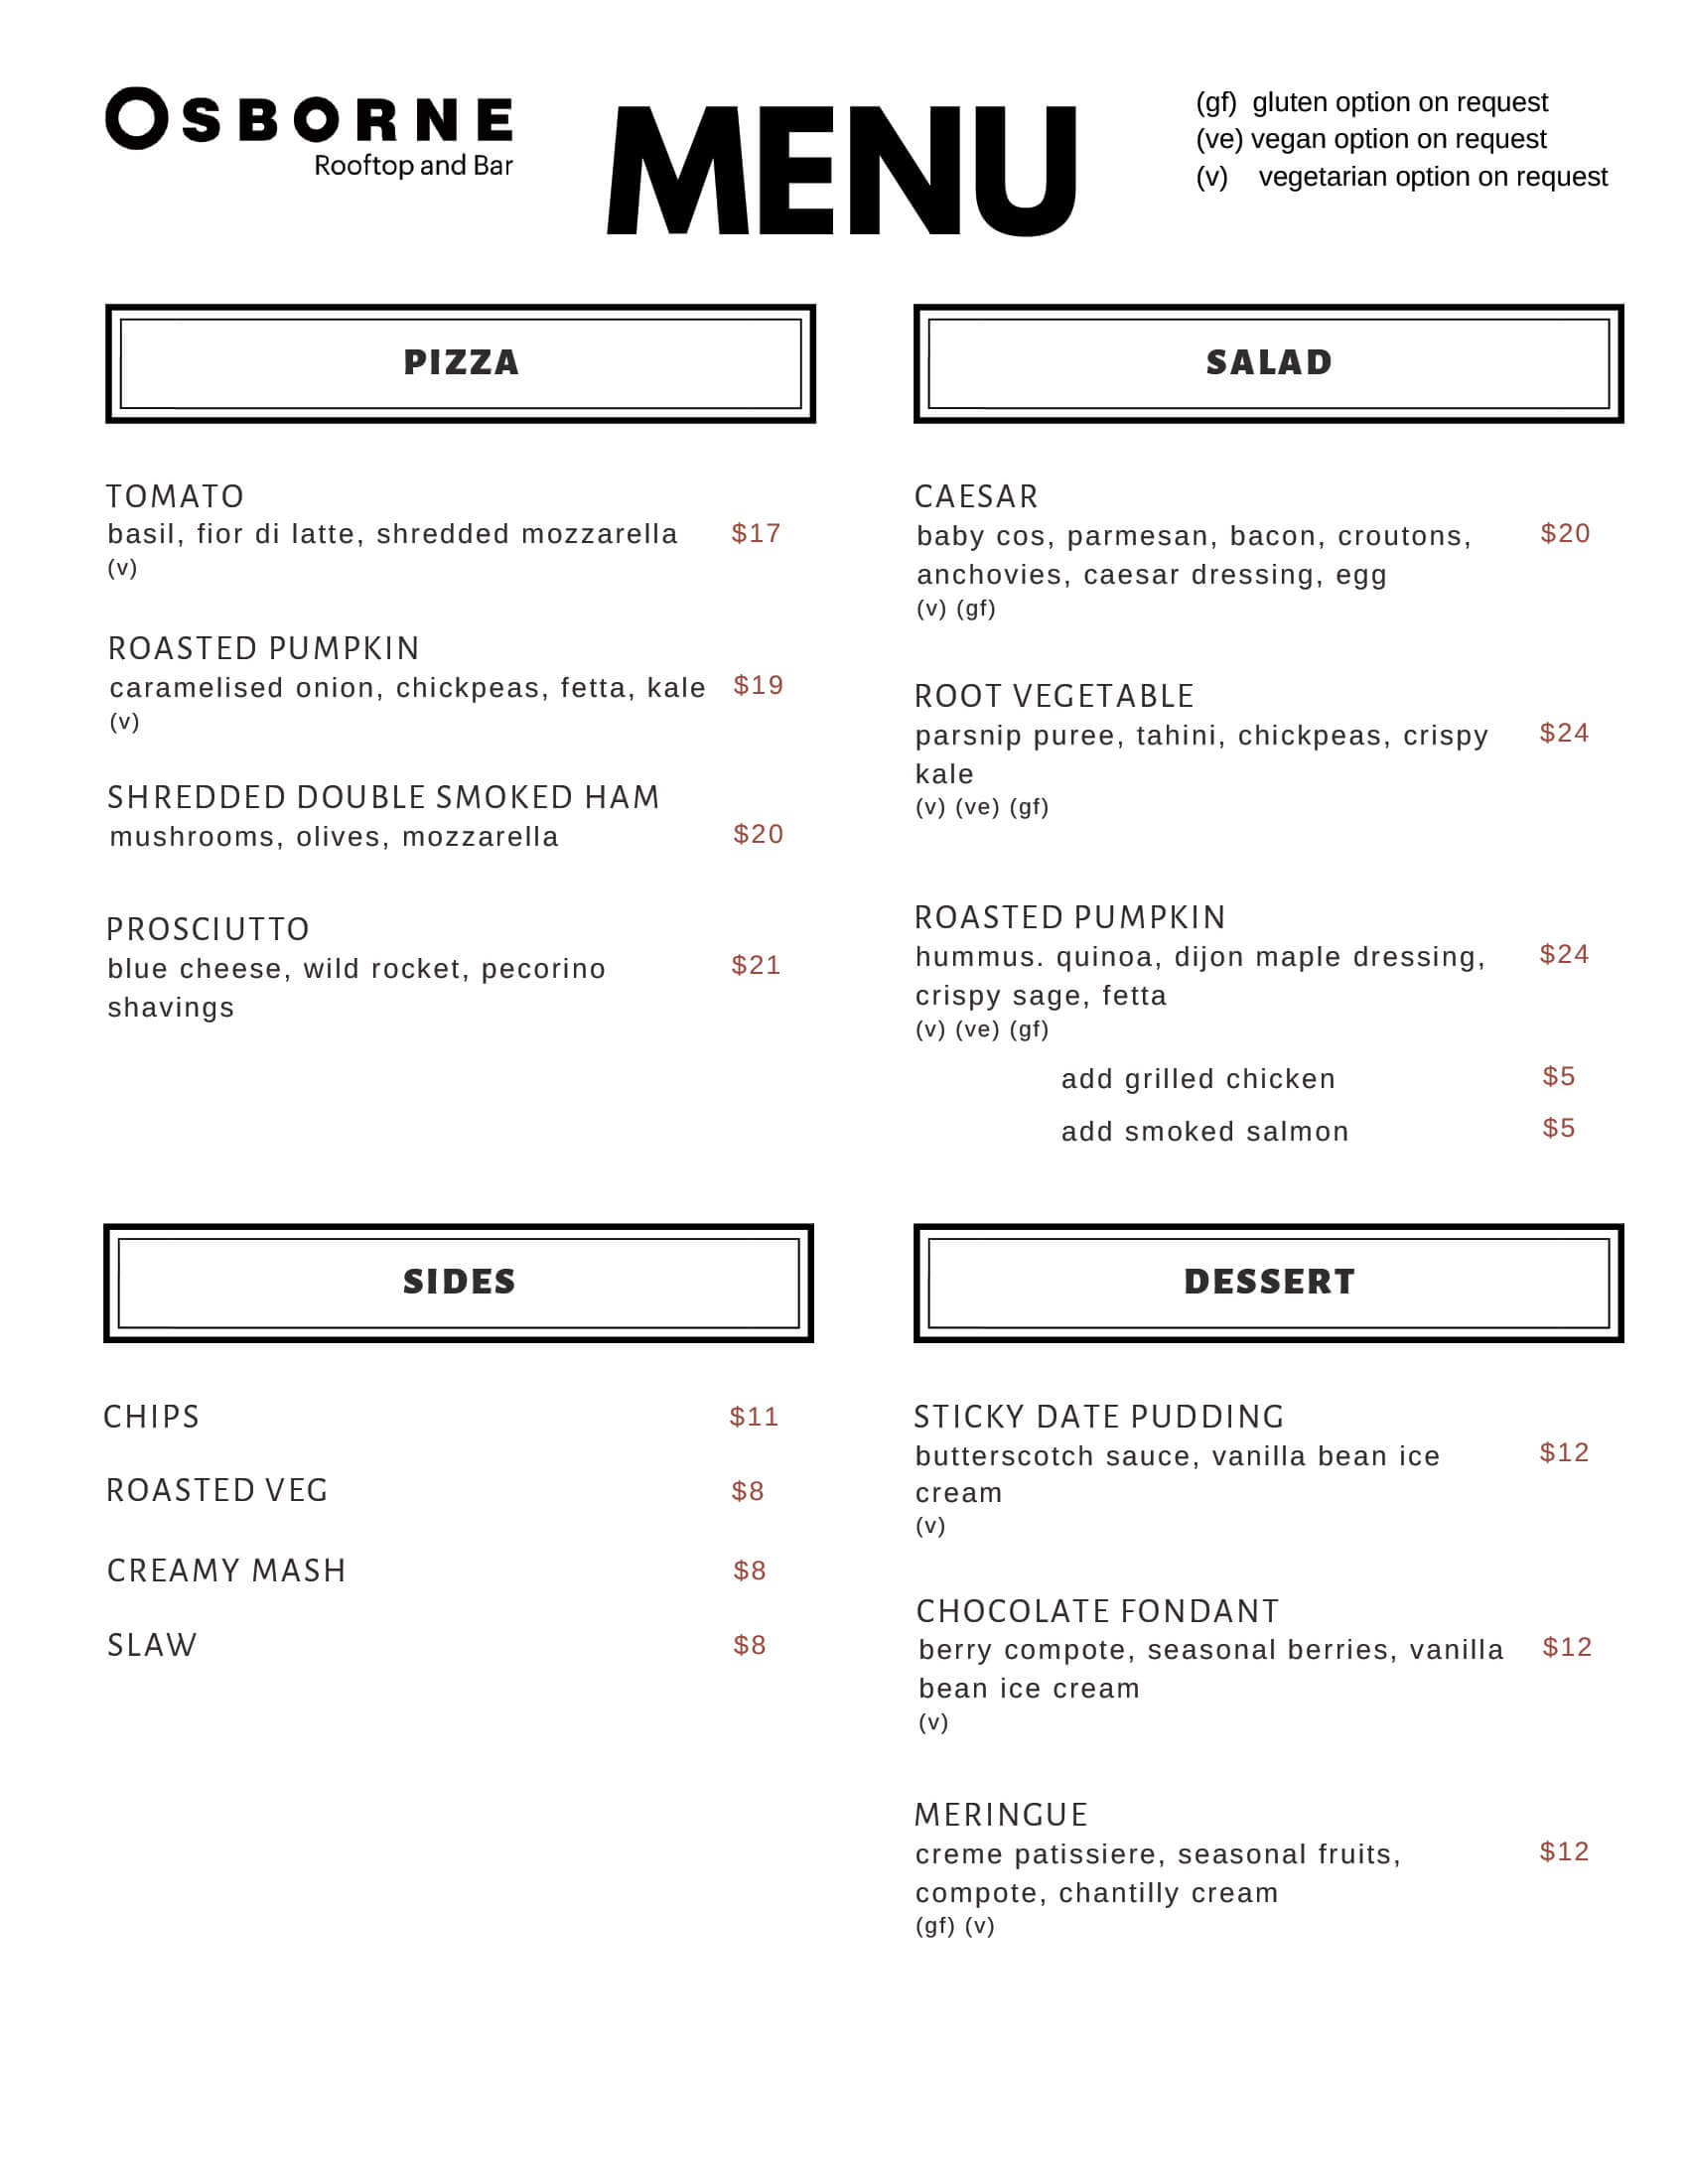 The Osborne Food Menu